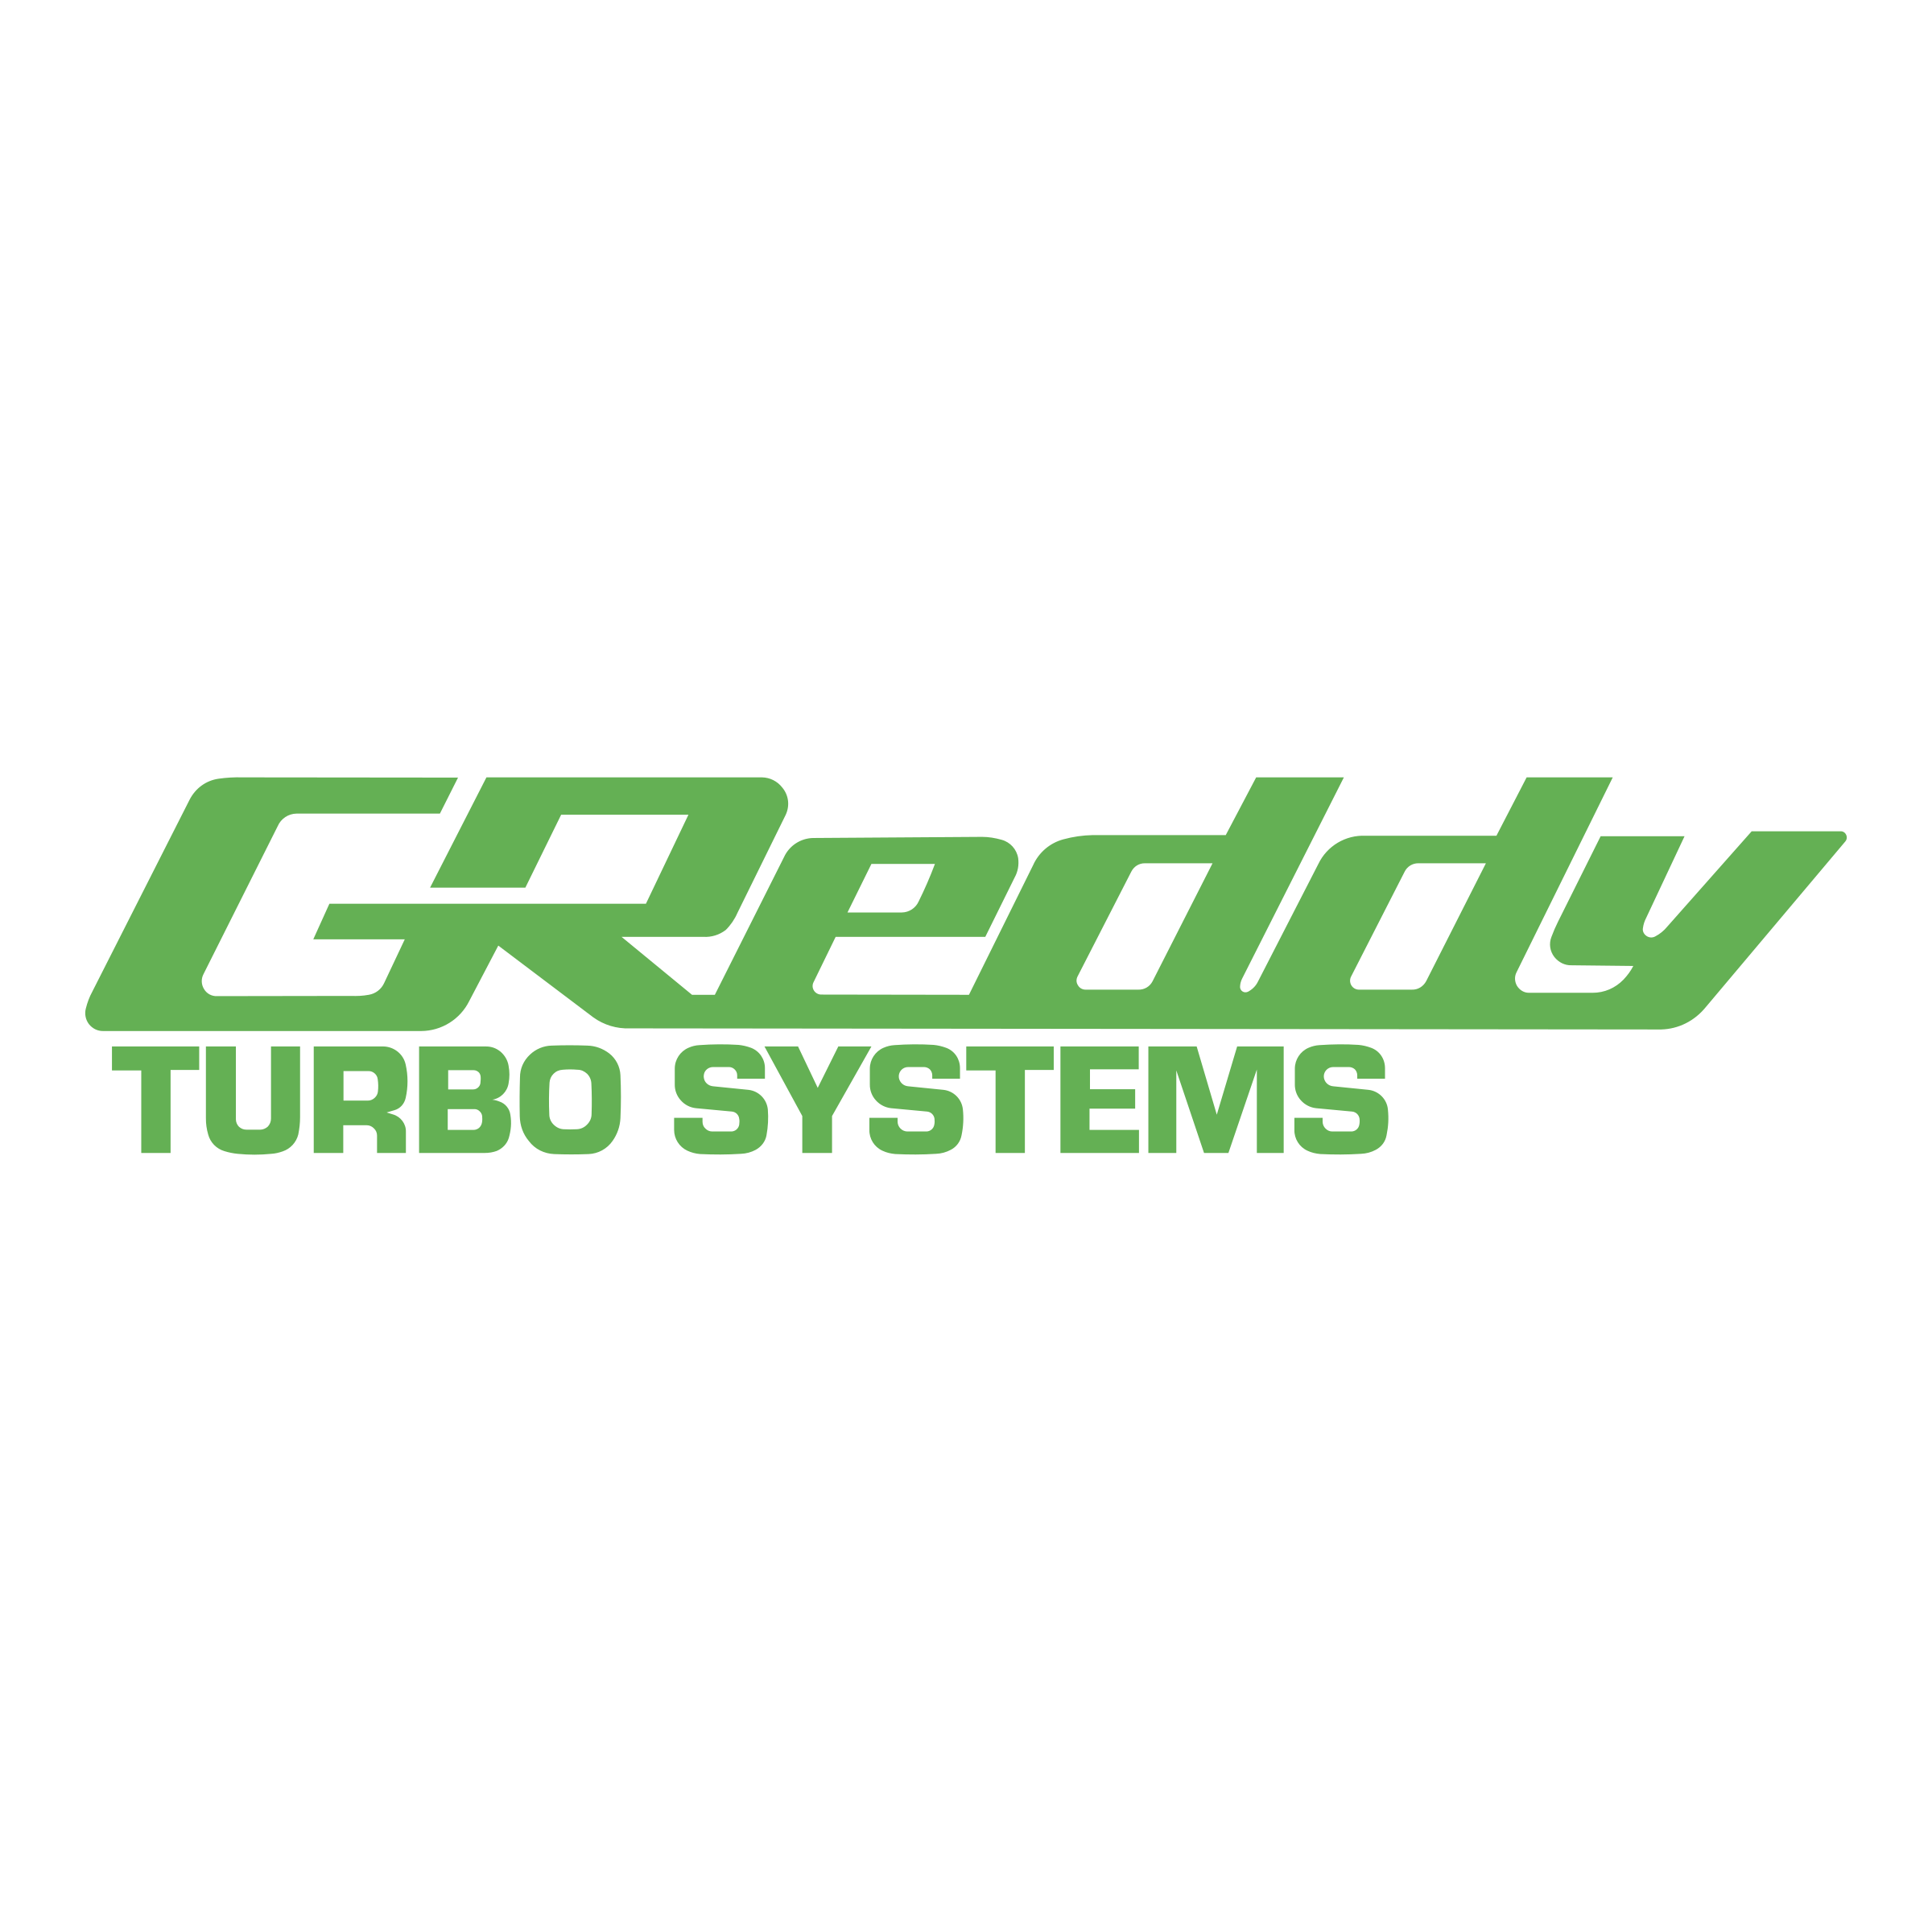 GReddy Turbo Systems Logo PNG Transparent & SVG Vector.